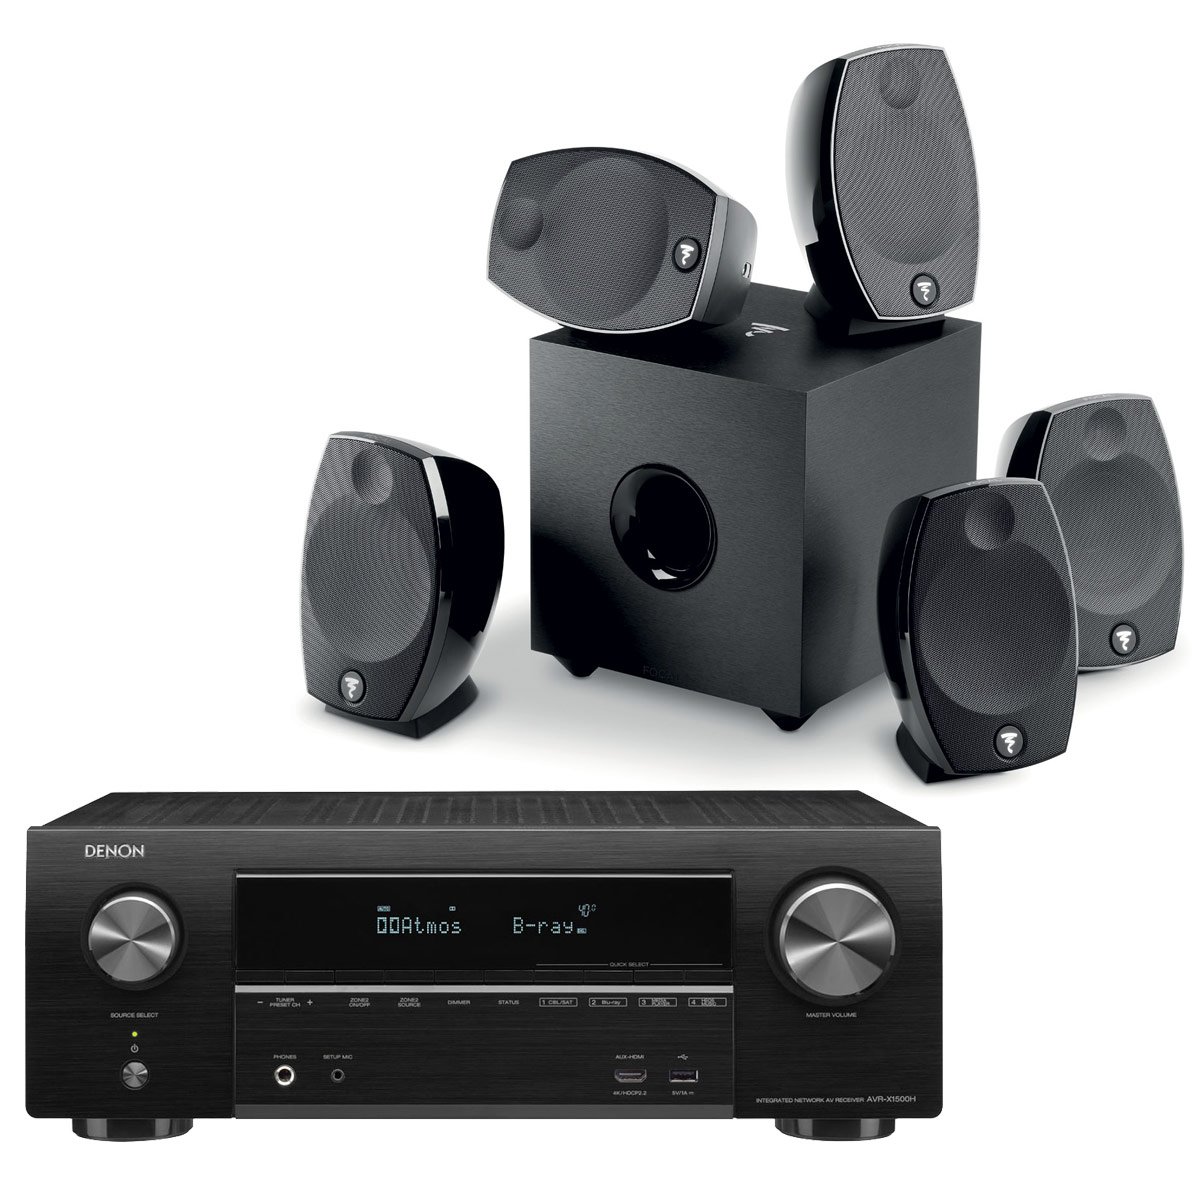 Ensemble home cinéma Denon AVR-X1500H Noir + Focal Sib Evo 5.1 Ampli-tuner Home Cinema 3D Ready 7.2 - Dolby Atmos / DTS:X - 6x HDMI 4K Ultra HD, HDCP 2.2, HDR - Wi-Fi, Bluetooth, AirPlay 2 - Multiroom - Amazon Alexa + Pack d'enceintes 5.1